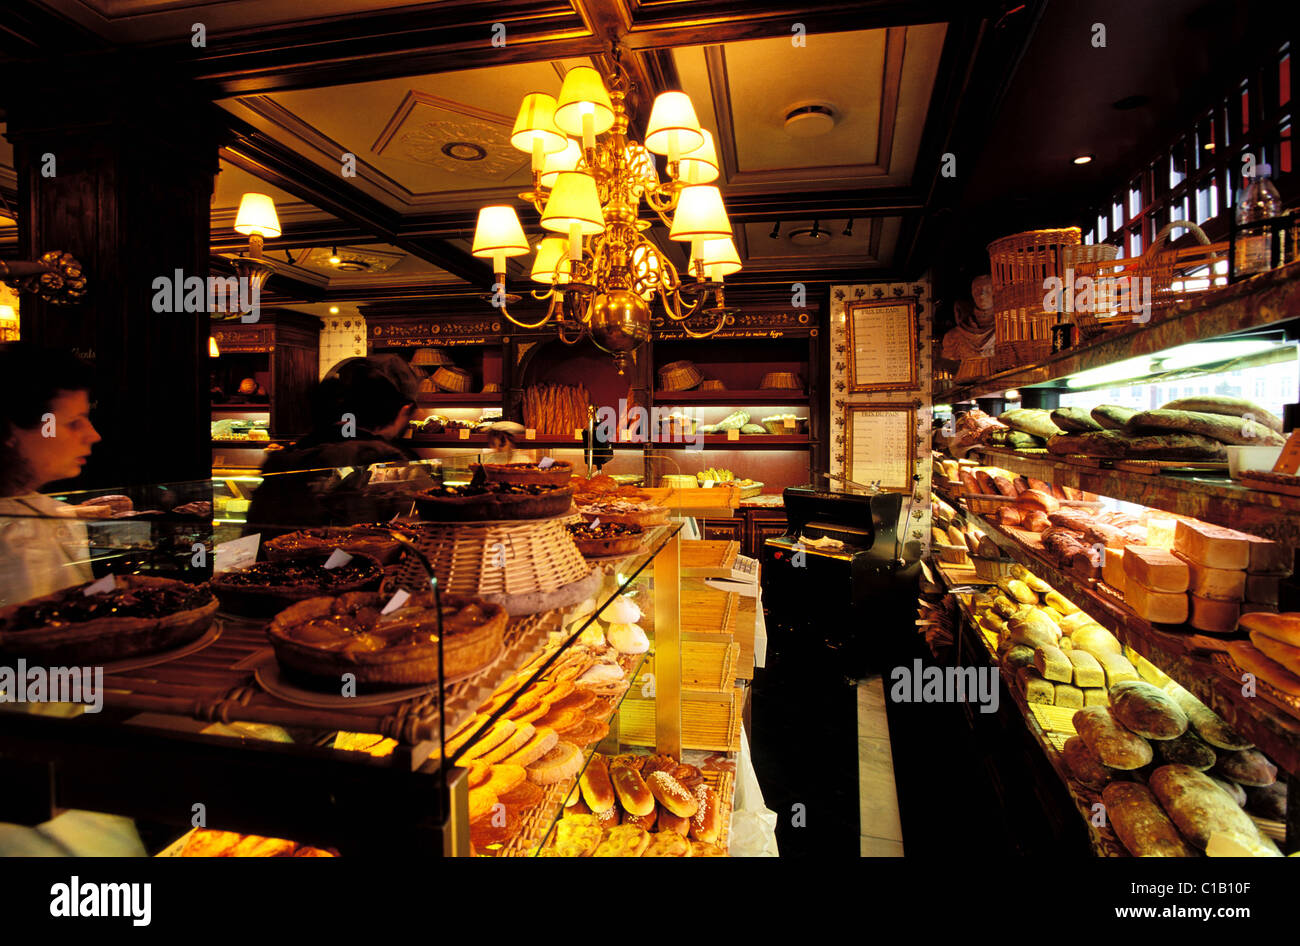 France, Nord, Lille, old town, Paul bakery-cake shop - Stock Image